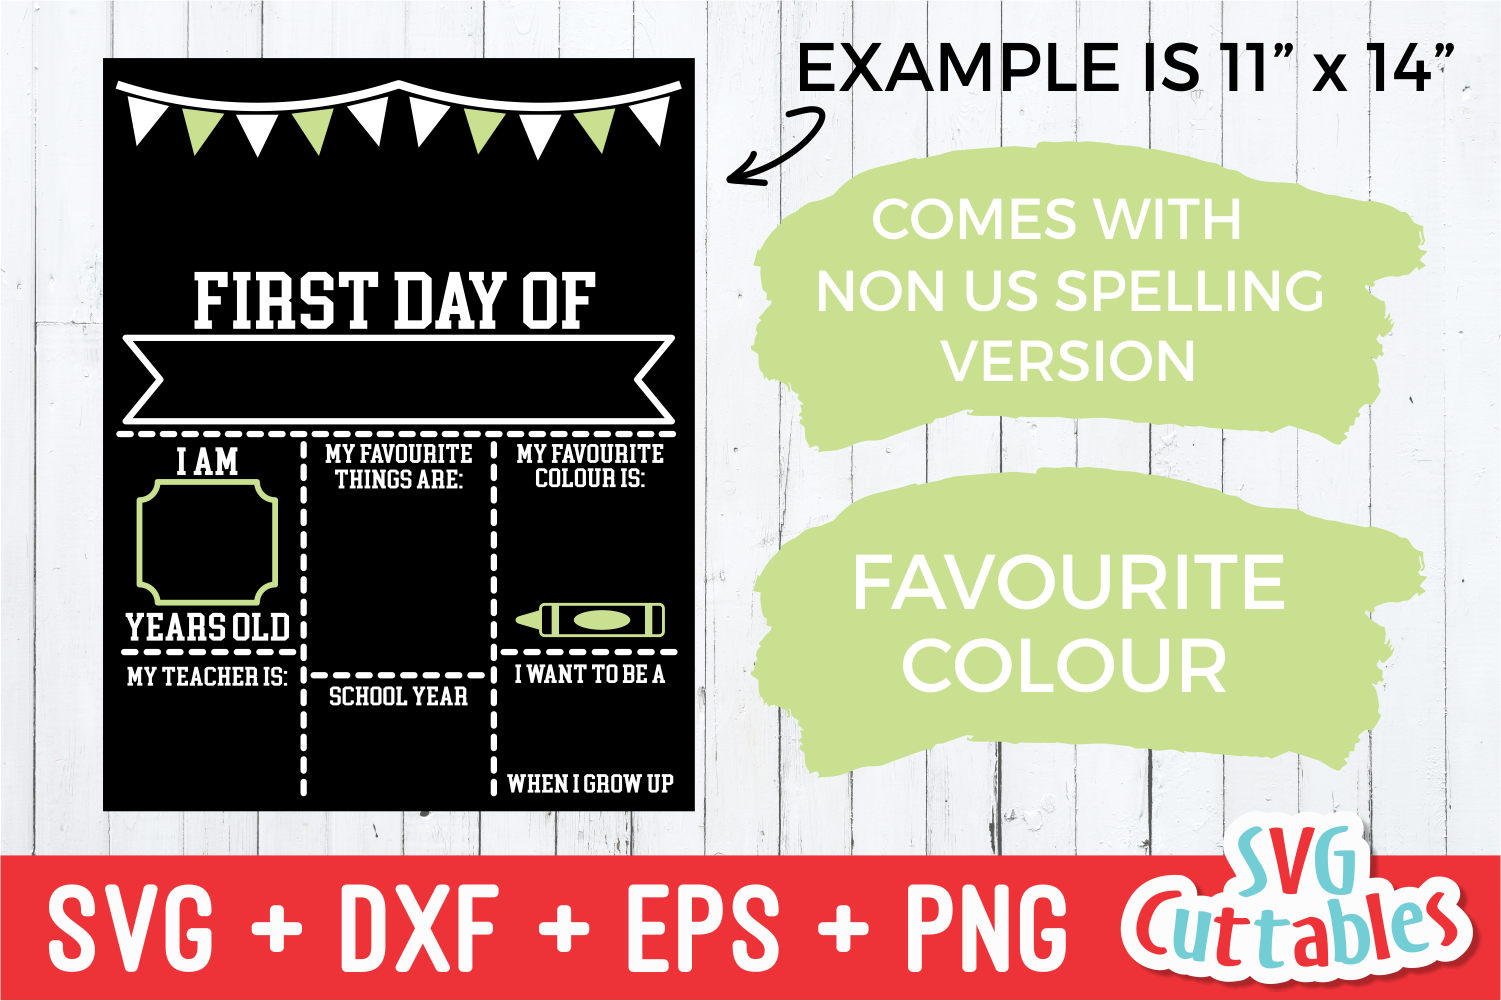 First Day of School, Last Day of School|svg Cut File example image 2